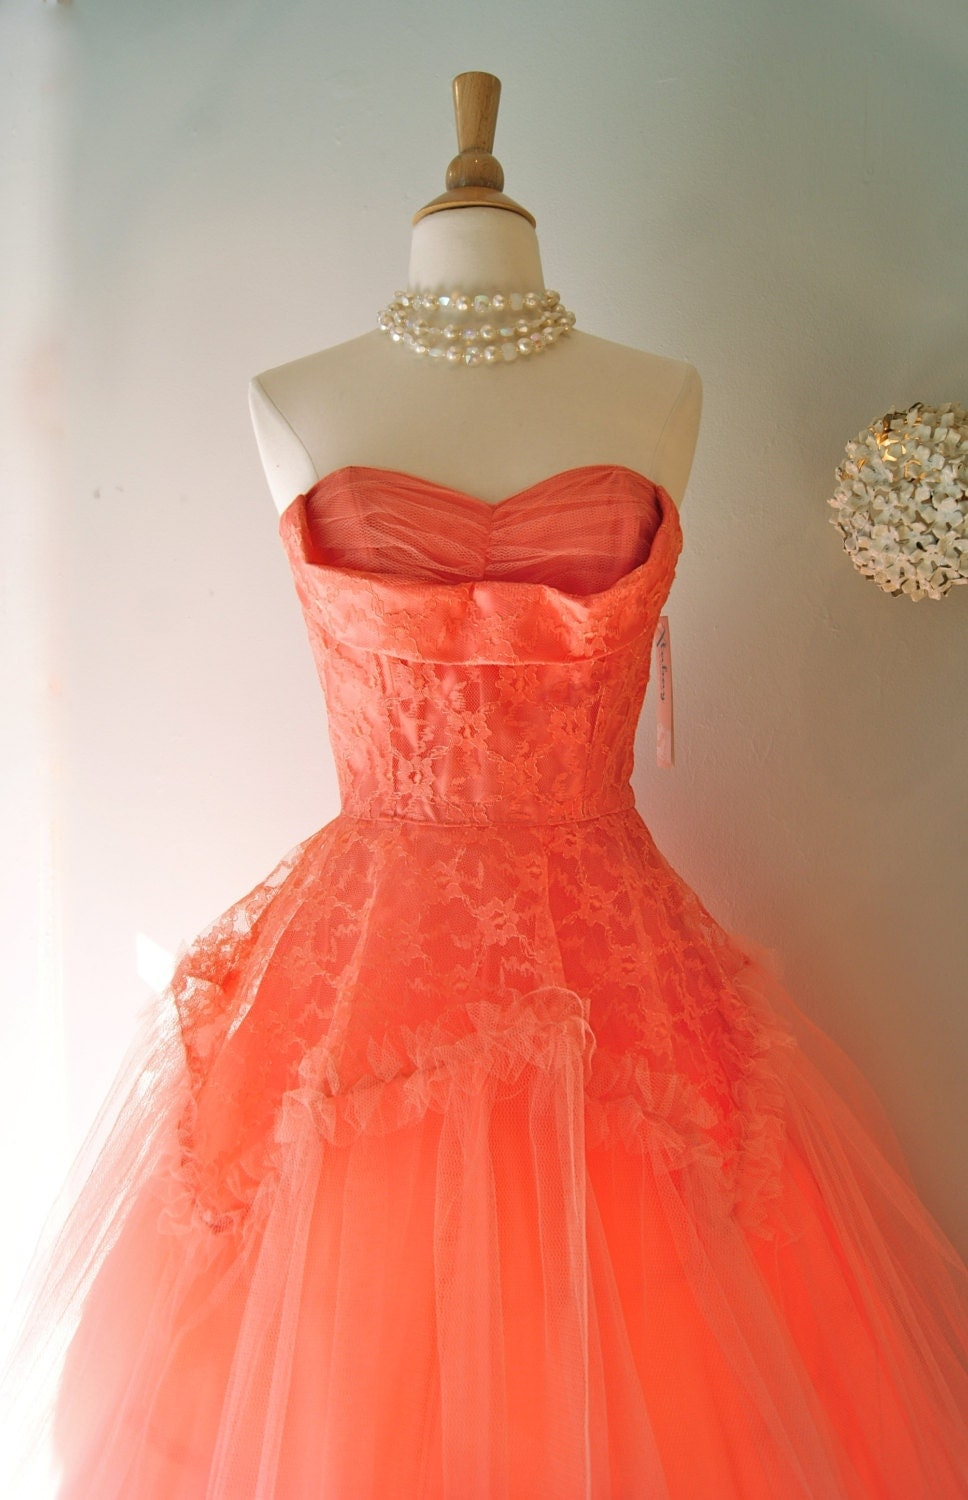 RESERVED 50s Dress // 1950s Prom Dress // Vintage 1950s Coral